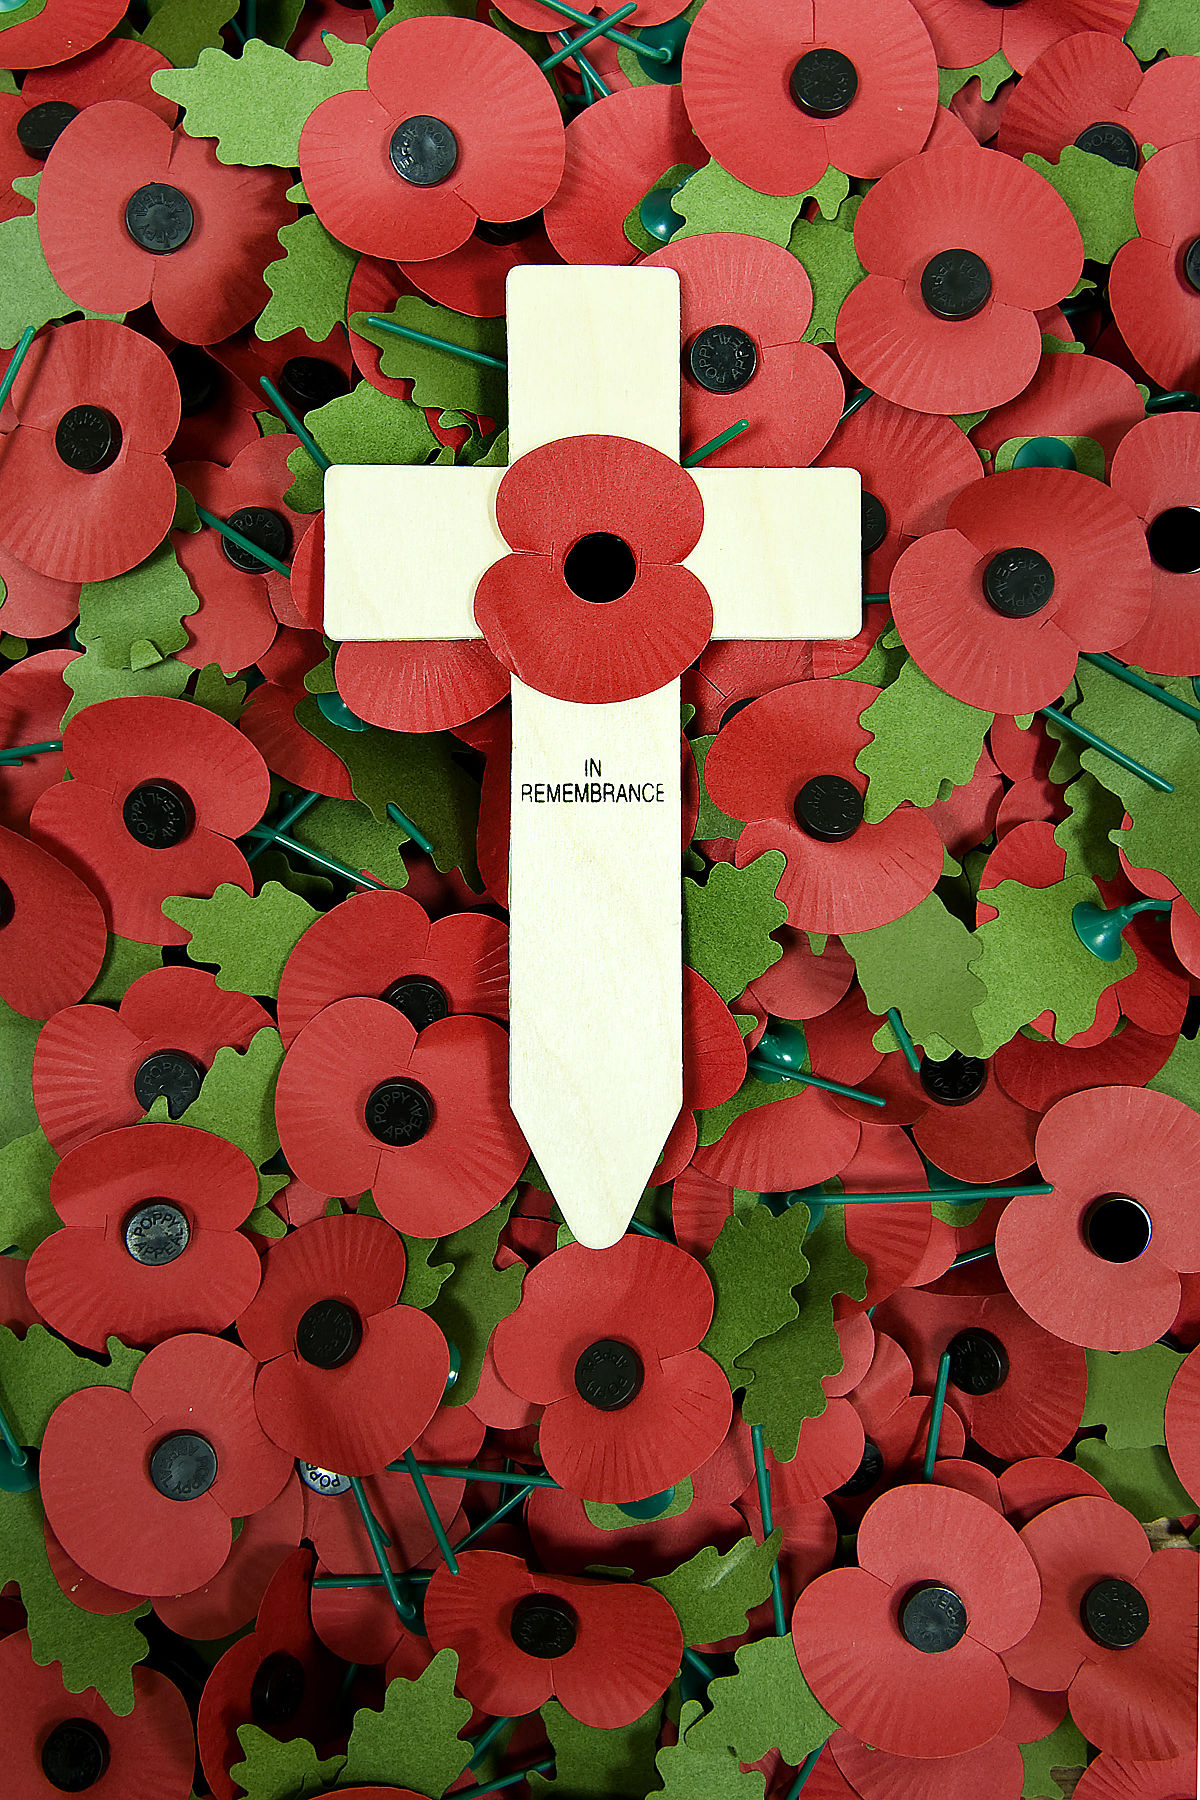 Remembrance cross - Wikipedia